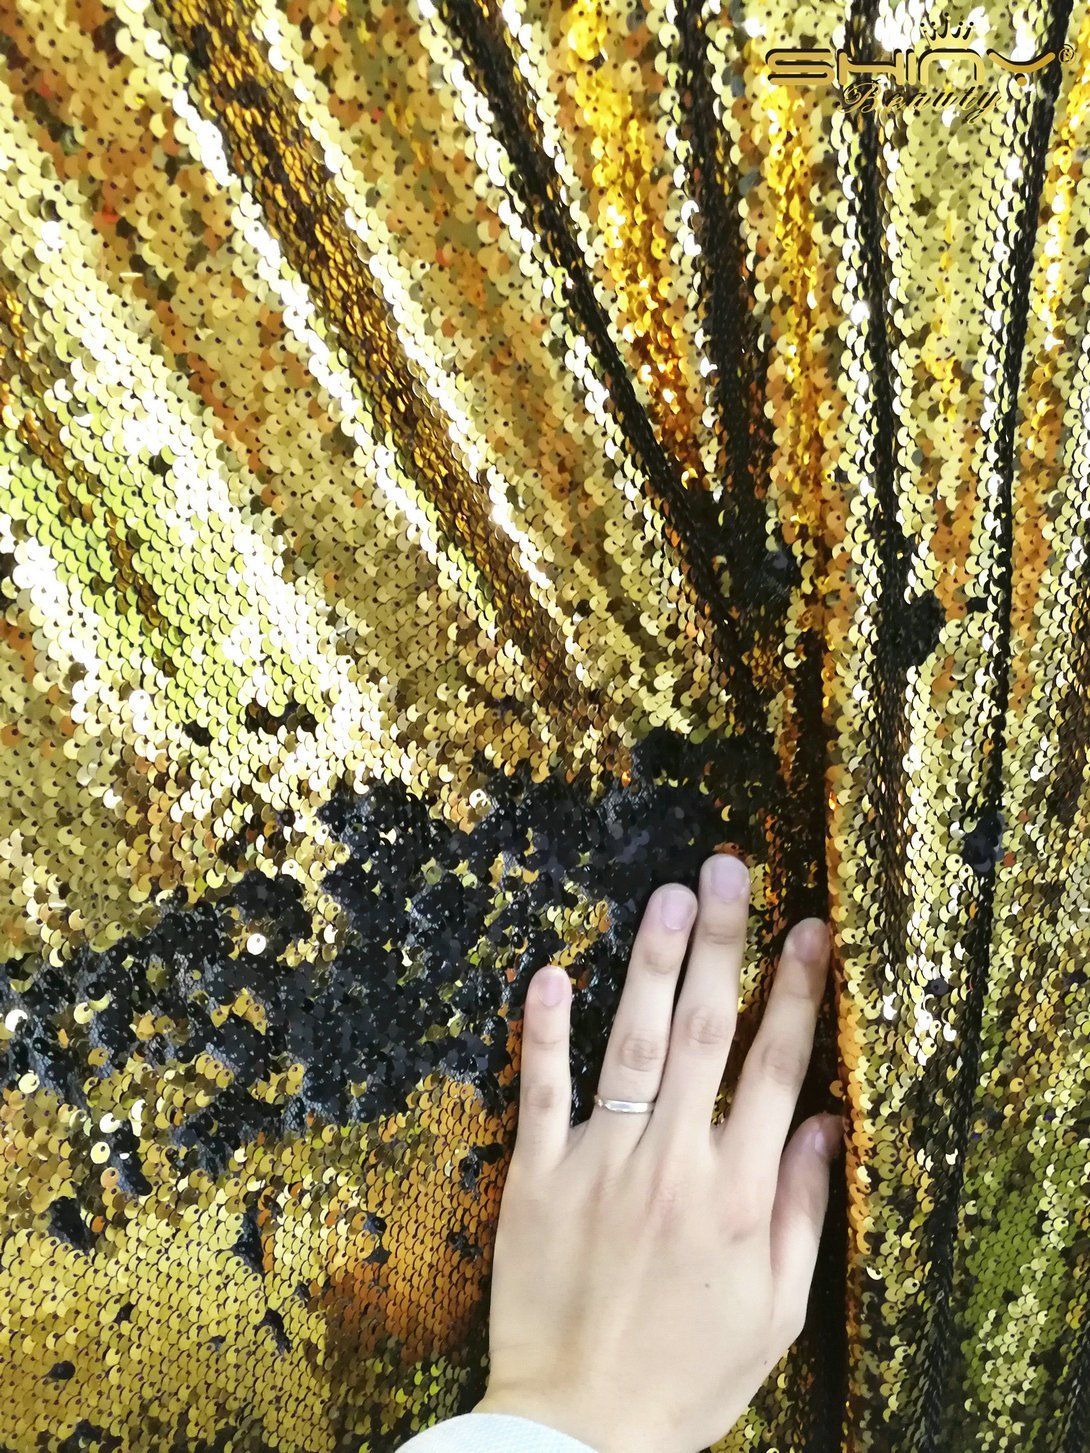 ShinyBeauty 10FTx10FT-Mermaid-Matte Gold&Black-Sequin Curtain Backdrop,Reversible Sequin Fabirc Photography Backdrops For Photo/Wedding/Party/Event/Prom/Birthday